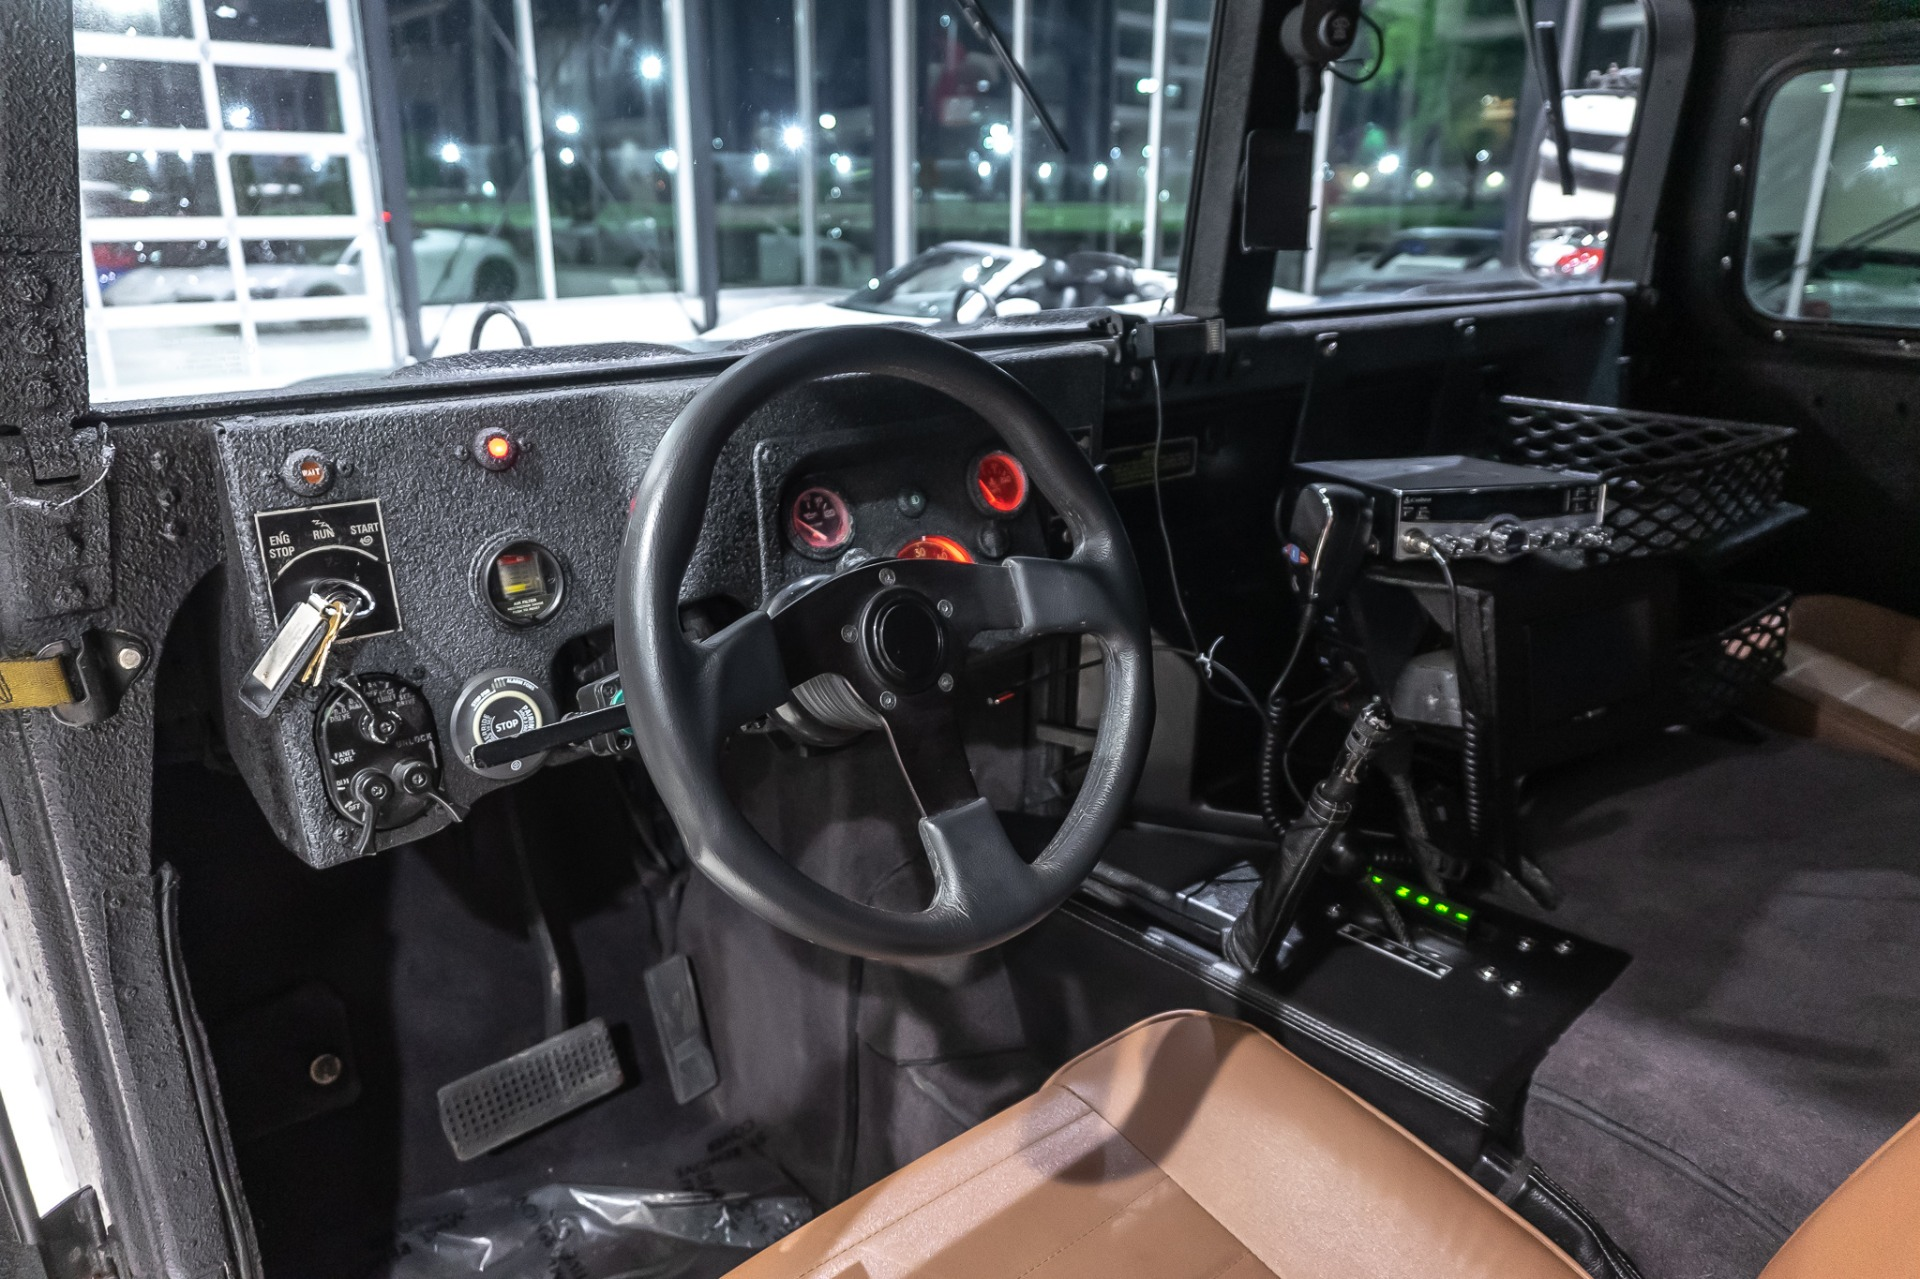 Used-1987-AM-GENERAL-HUMMER-M998-HMMWV-62L--HUMVEE-3-SPEED-AUTOMATIC